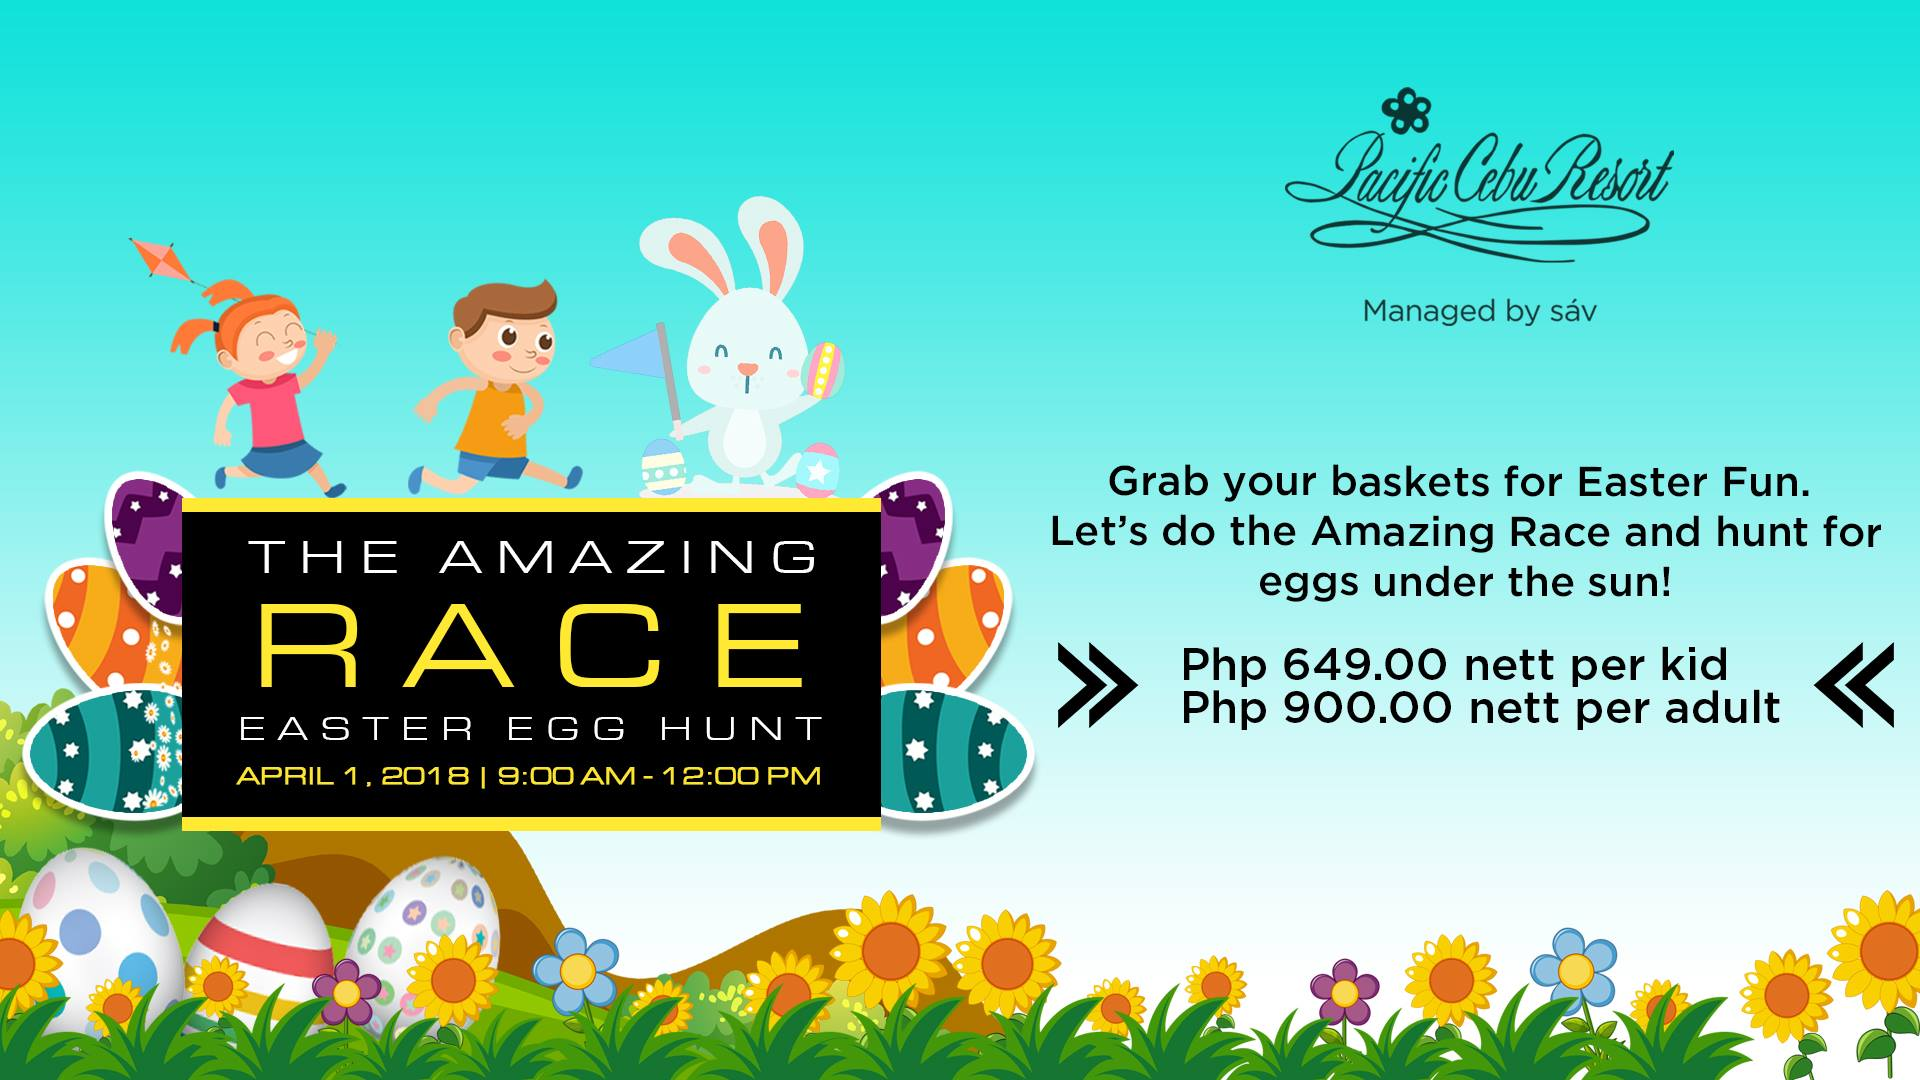 Cebu pacific resort - easter egg hunt 2018